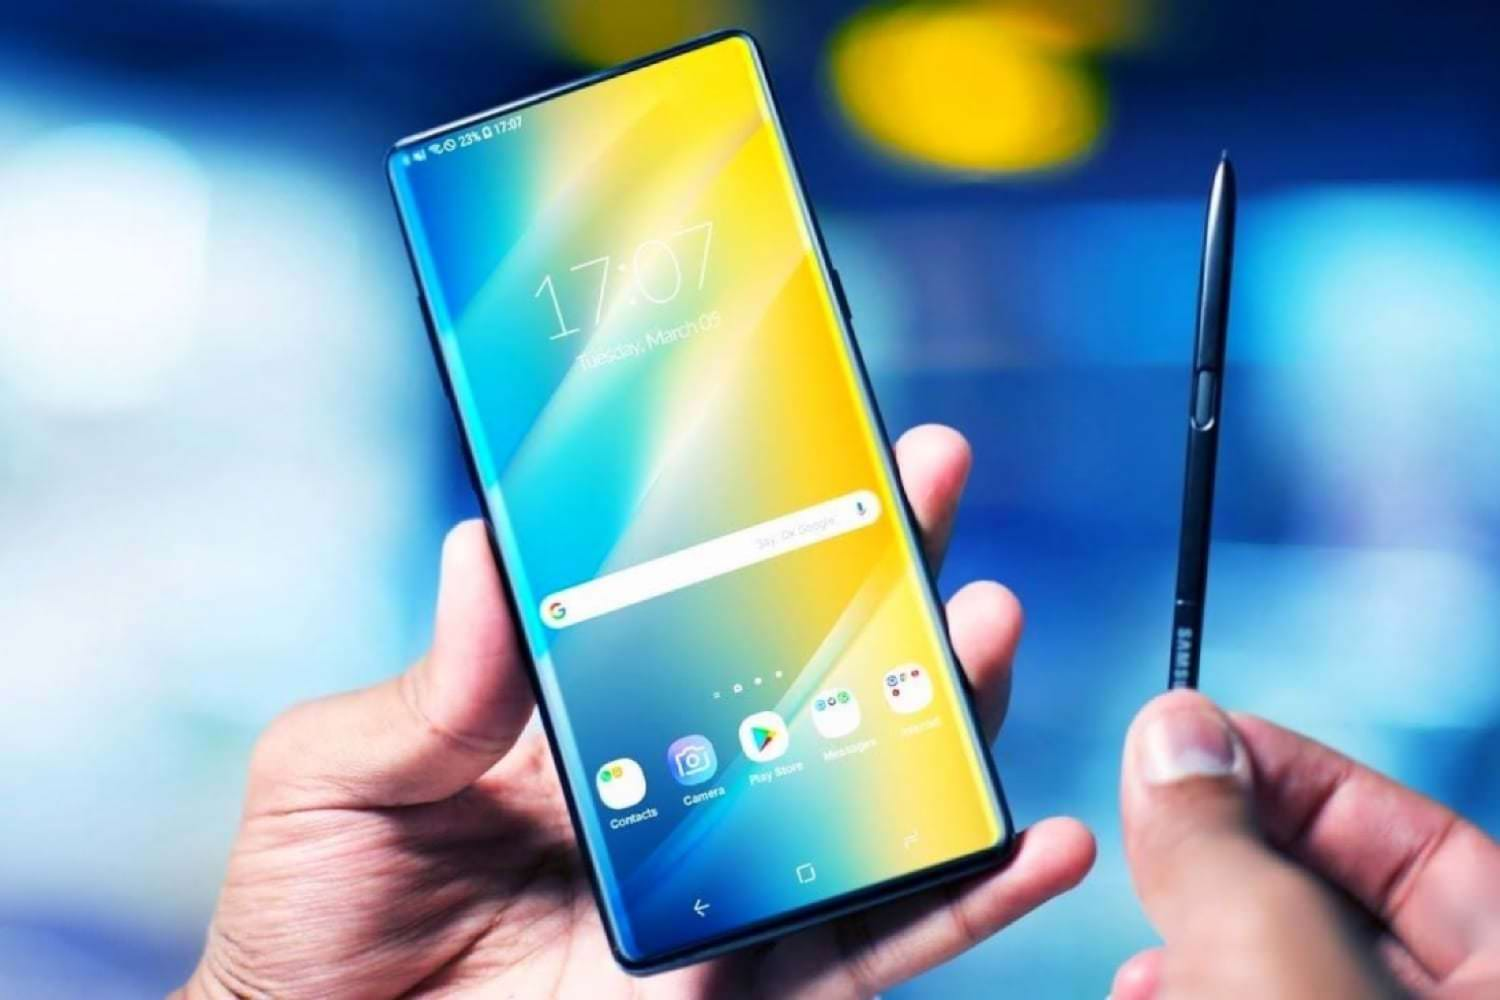 Samsung Galaxy Note 10 на официальных изображениях поверг всех в шок